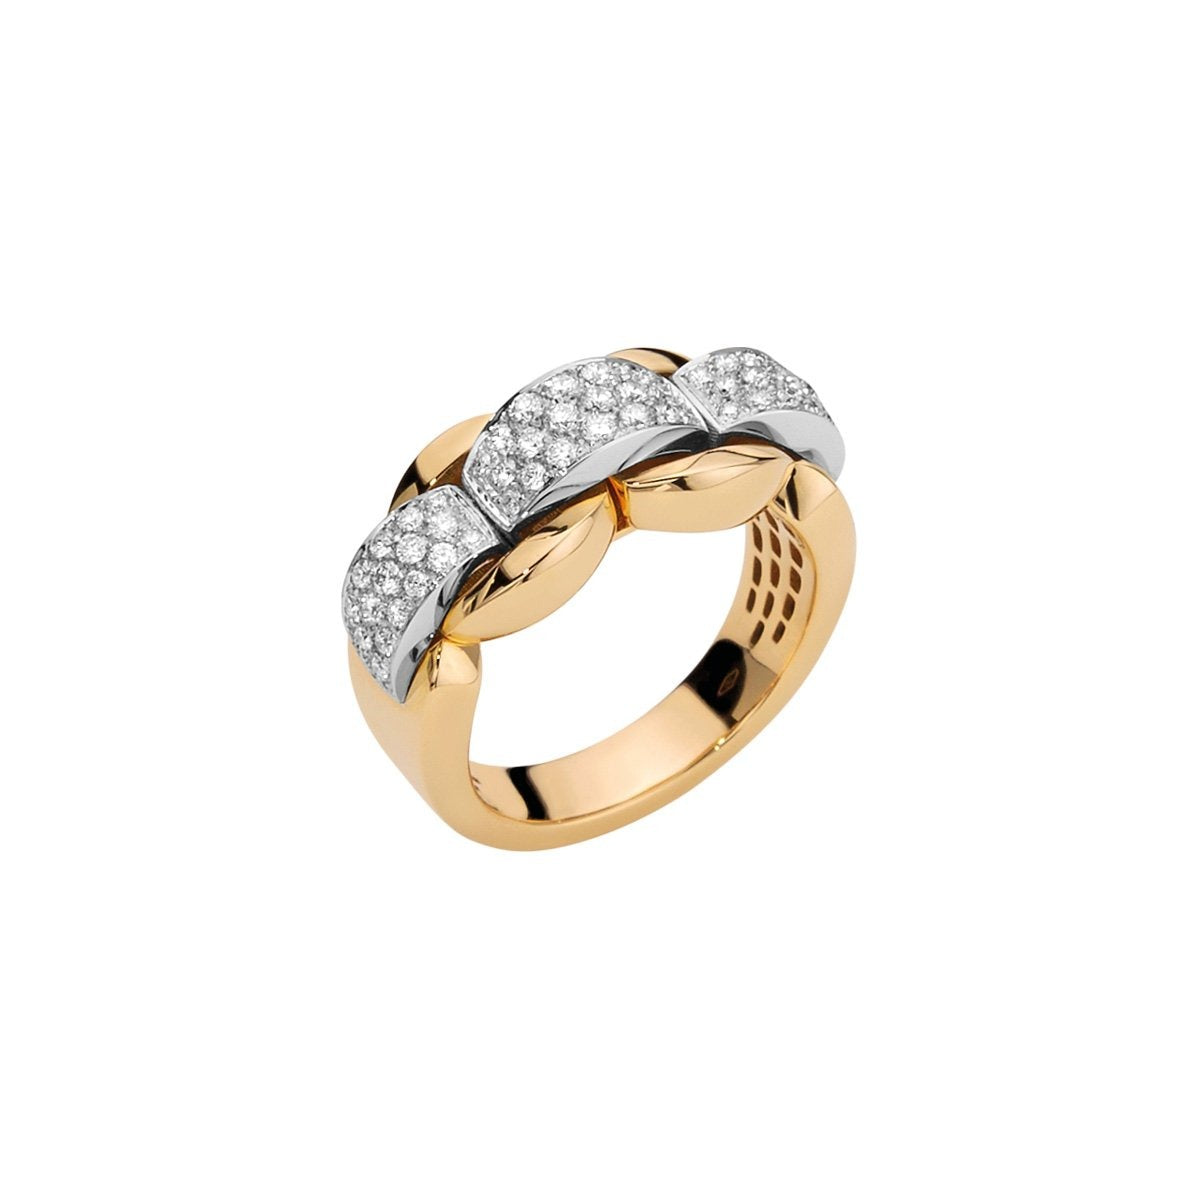 FOPE Novita Ring in 18ct Yellow Gold With Pave Diamond Strip - Hamilton & Inches